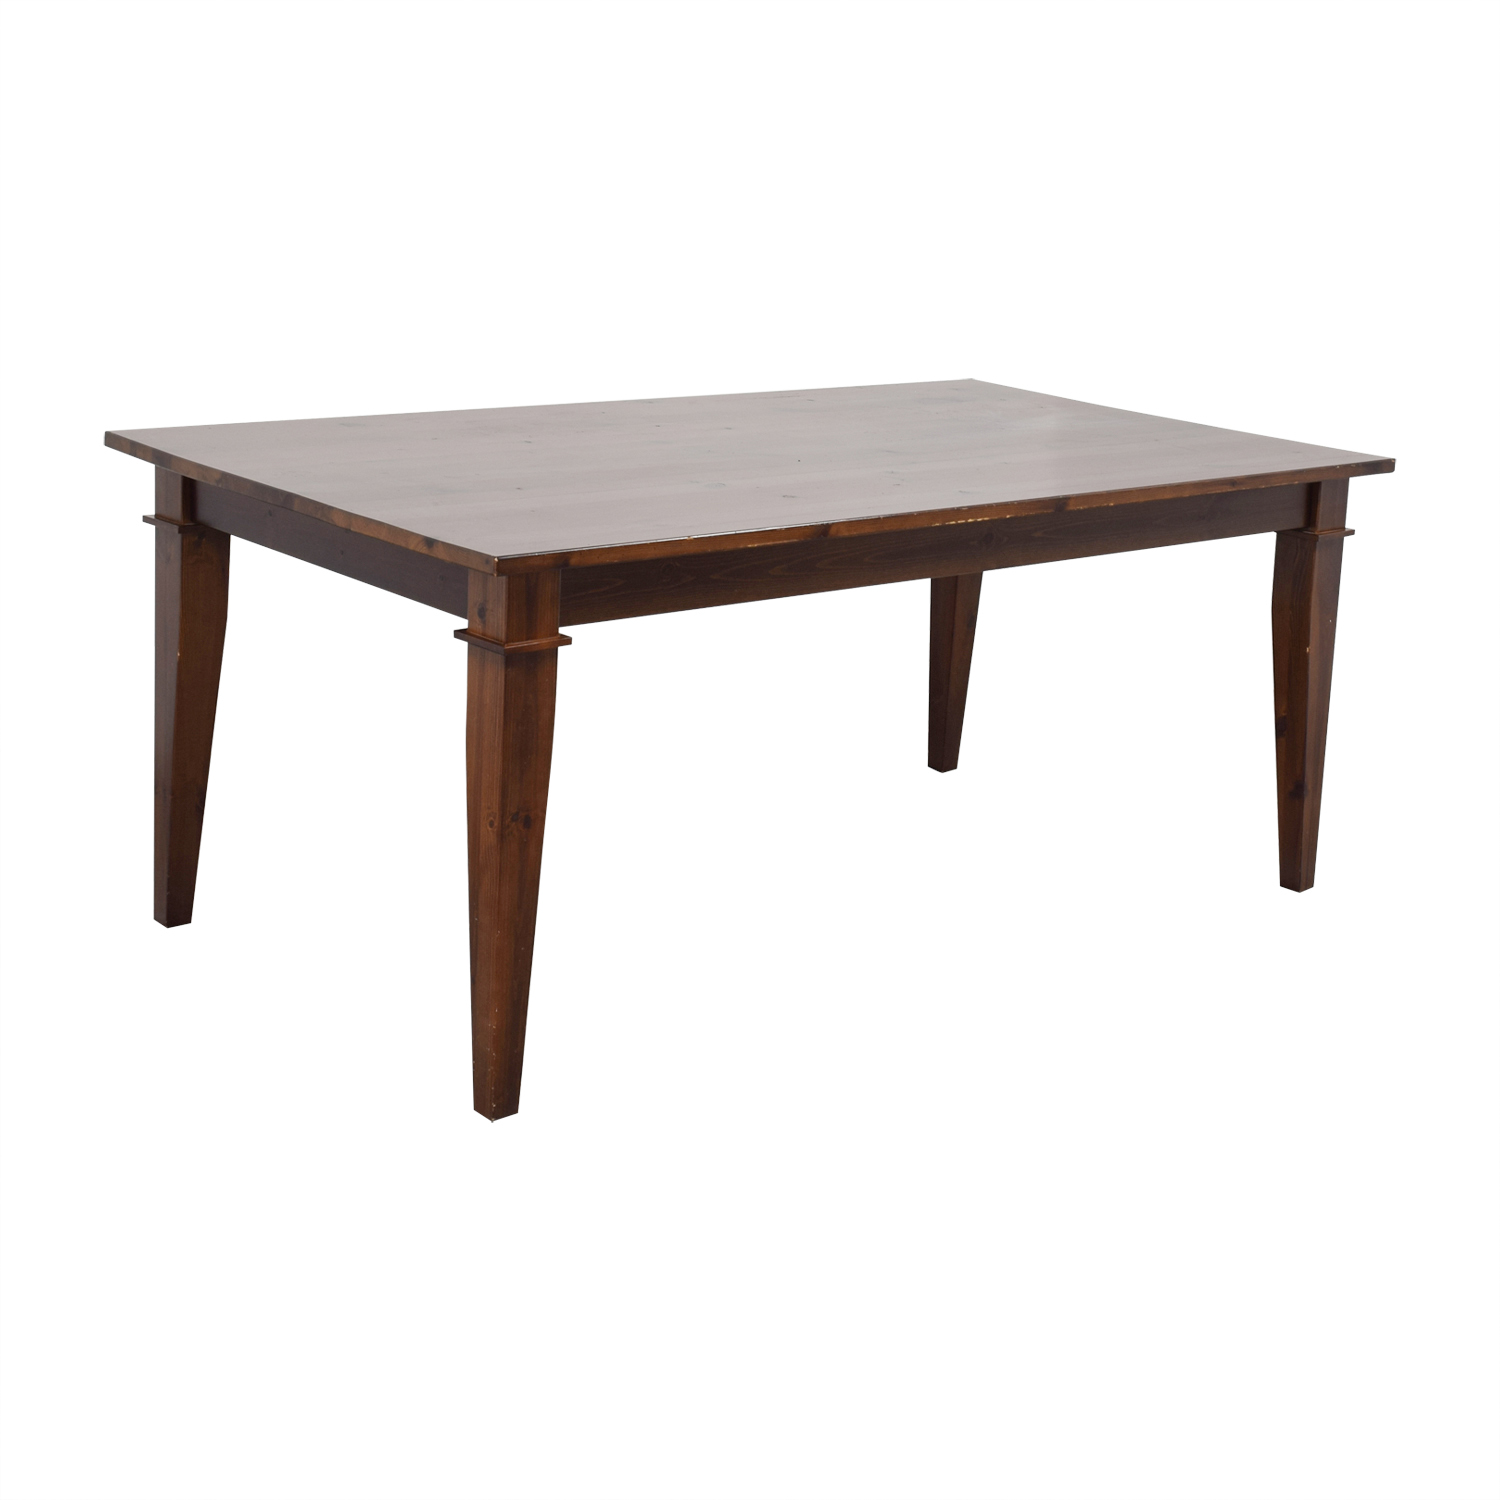 Pottery Barn Pottery Barn Dining Table with Glass Top for sale